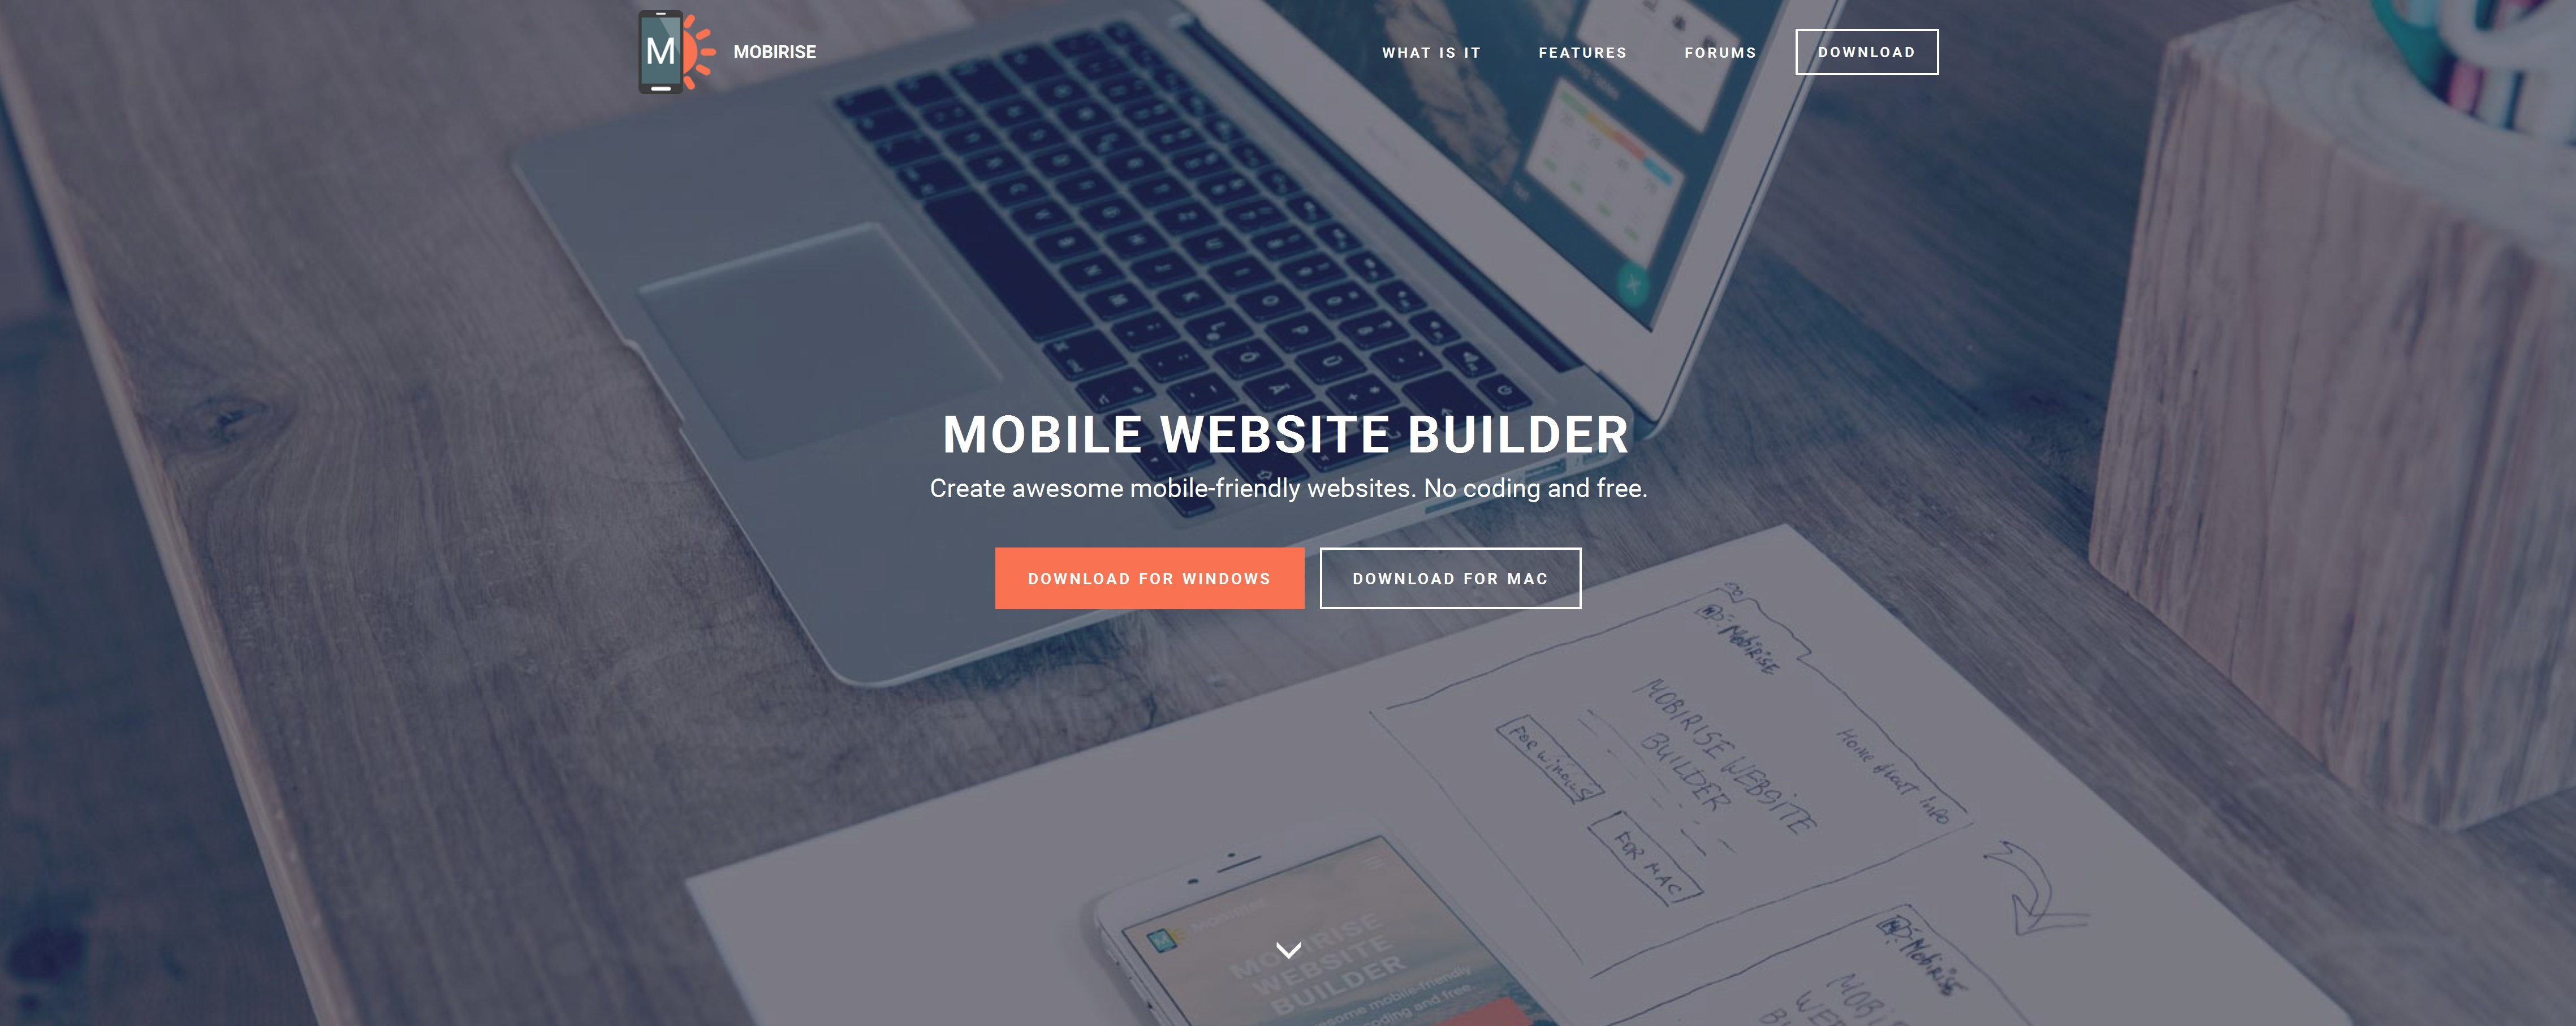 WYSIWYG Mobile Website Maker Review